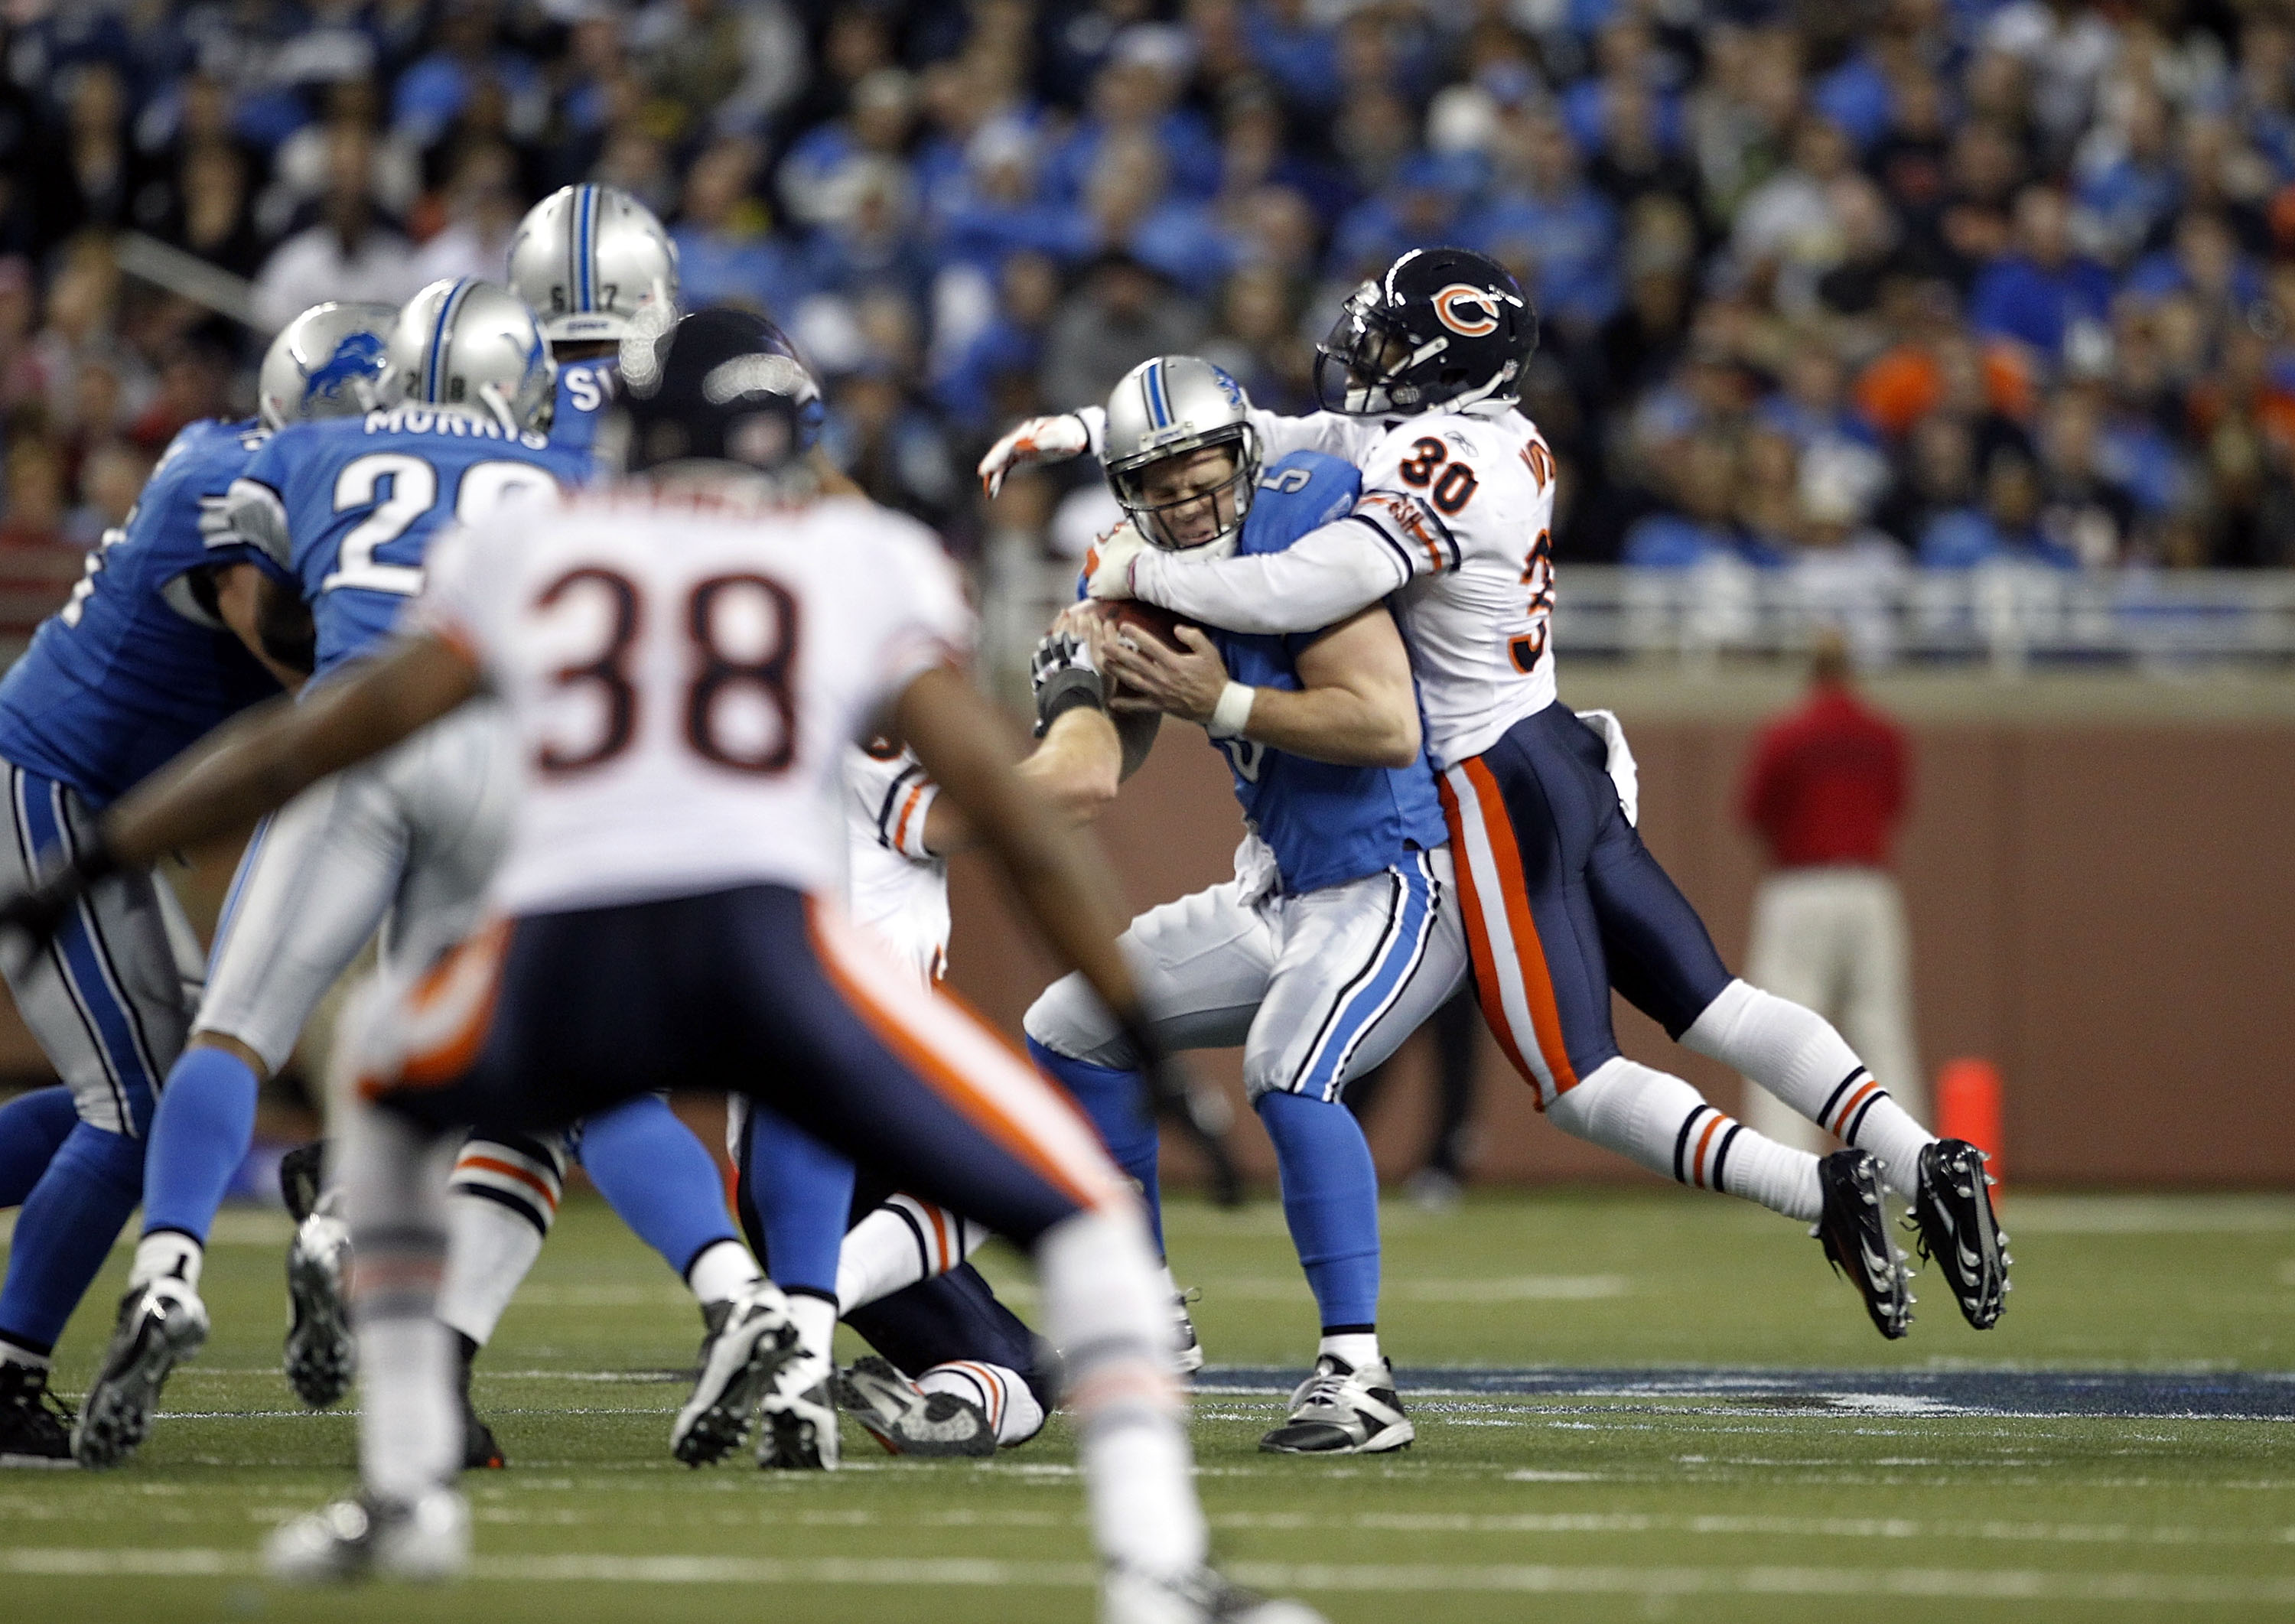 DETROIT - DECEMBER 05: Drew Stanton #5 of the Detroit Lions is sacked by D. J. Moore #30 of the Chicago Bears during the fourth quarter of the game at Ford Field on December 5, 2010 in Detroit, Michigan. The Bears defeated the Lions 24-20.  (Photo by Leon